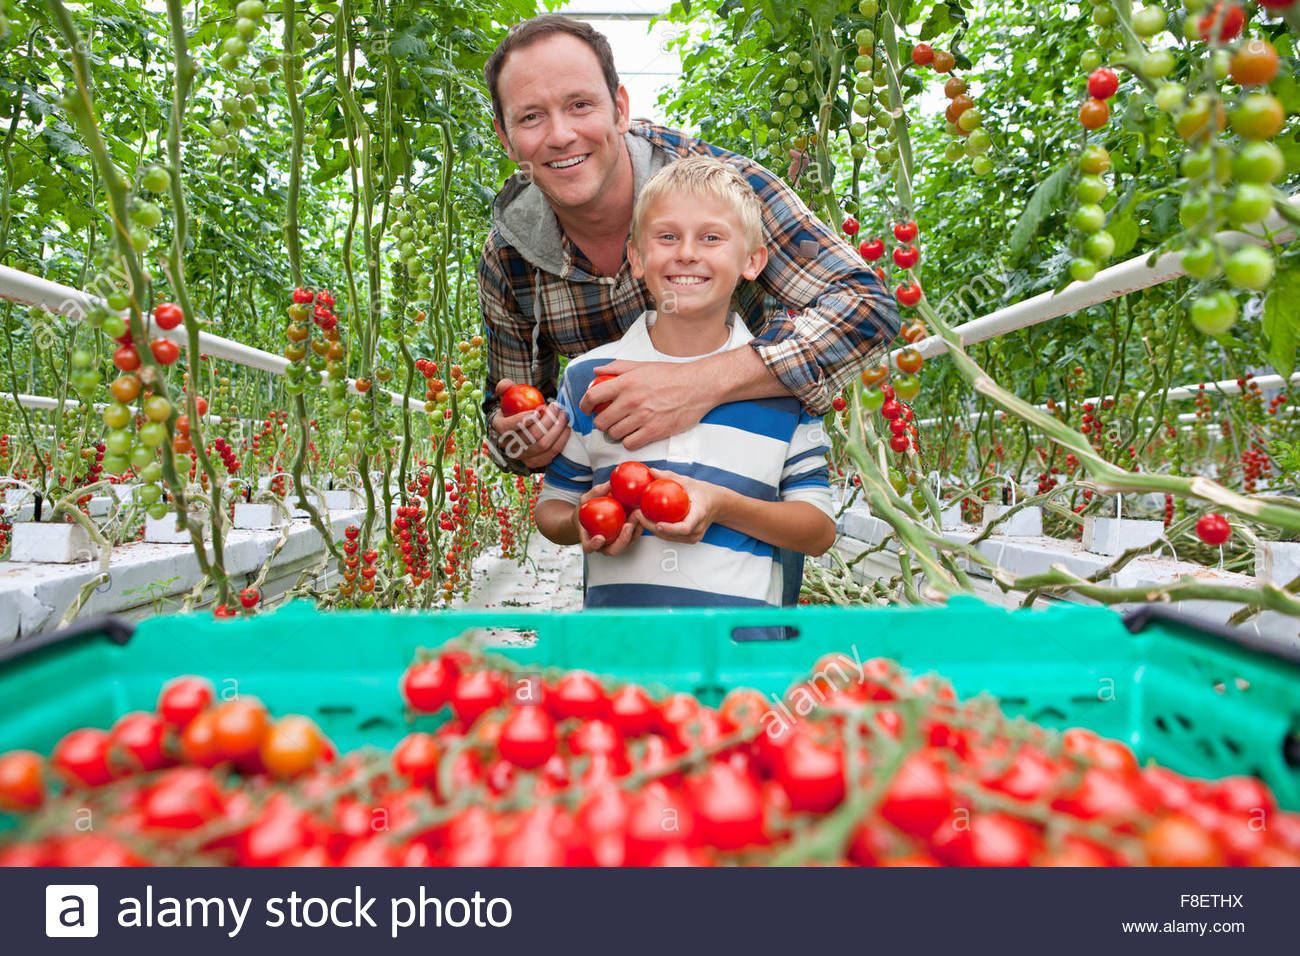 Portrait smiling father and son harvesting ripe red vine tomatoes in greenhouse - Stock Image